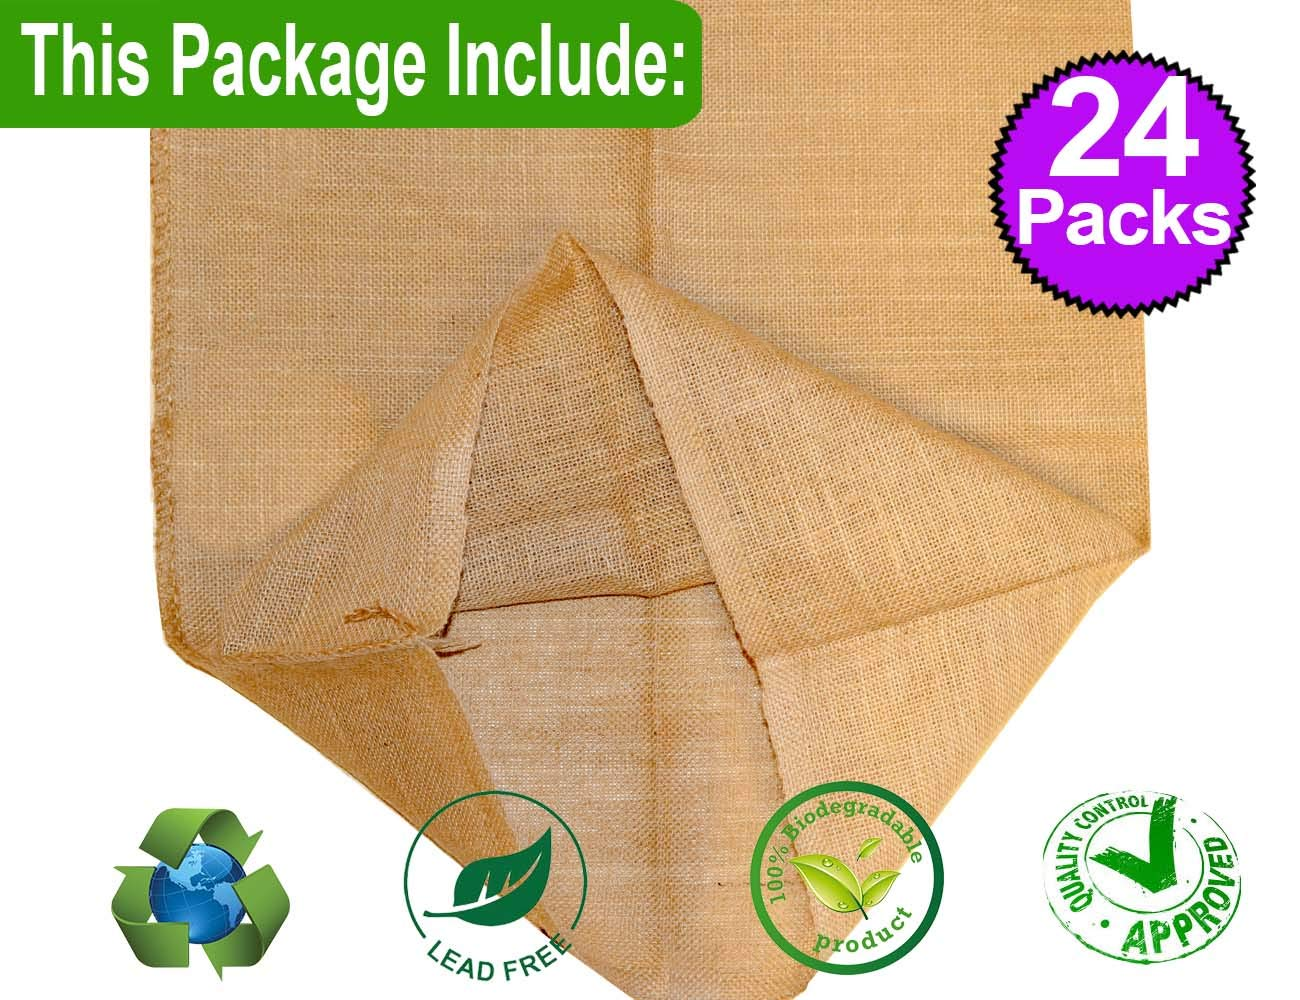 ToysOpoly Premium Burlap Potato Sack Race Bags 24 x 40 100/% Natural Eco-Friendly Jute Perfect Birthday Party Game for Kids /& Adults. - of Sturdy Rugged Pack of 12